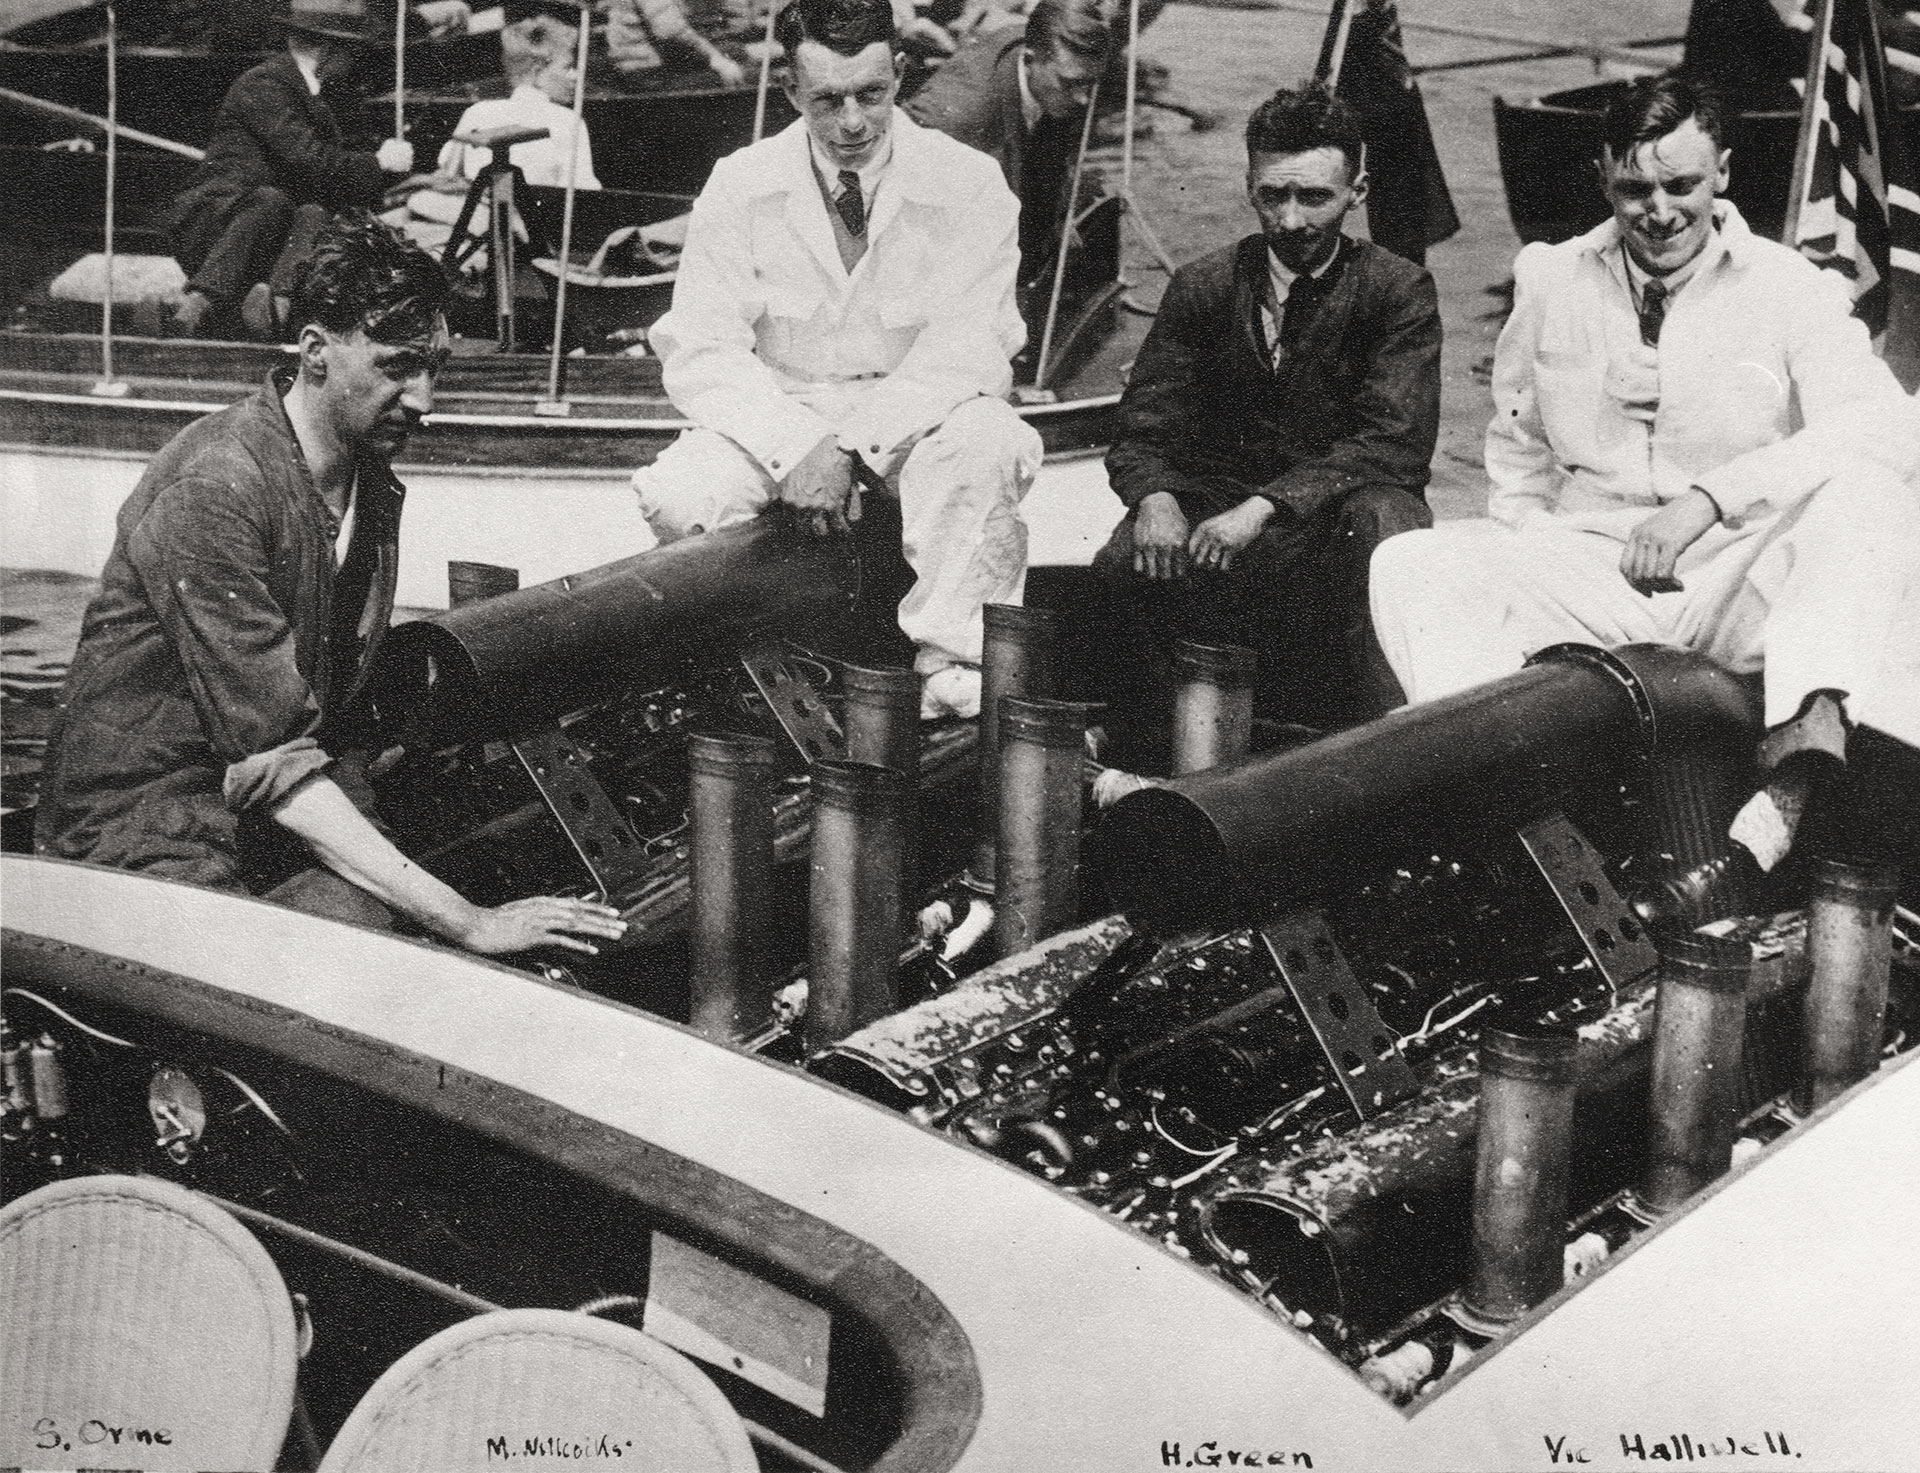 Miss England II Rolls-Royce V12 Aero Engines (left to right: S. Orme, M. Wilcocks, H. Green & Vic Halliwell)